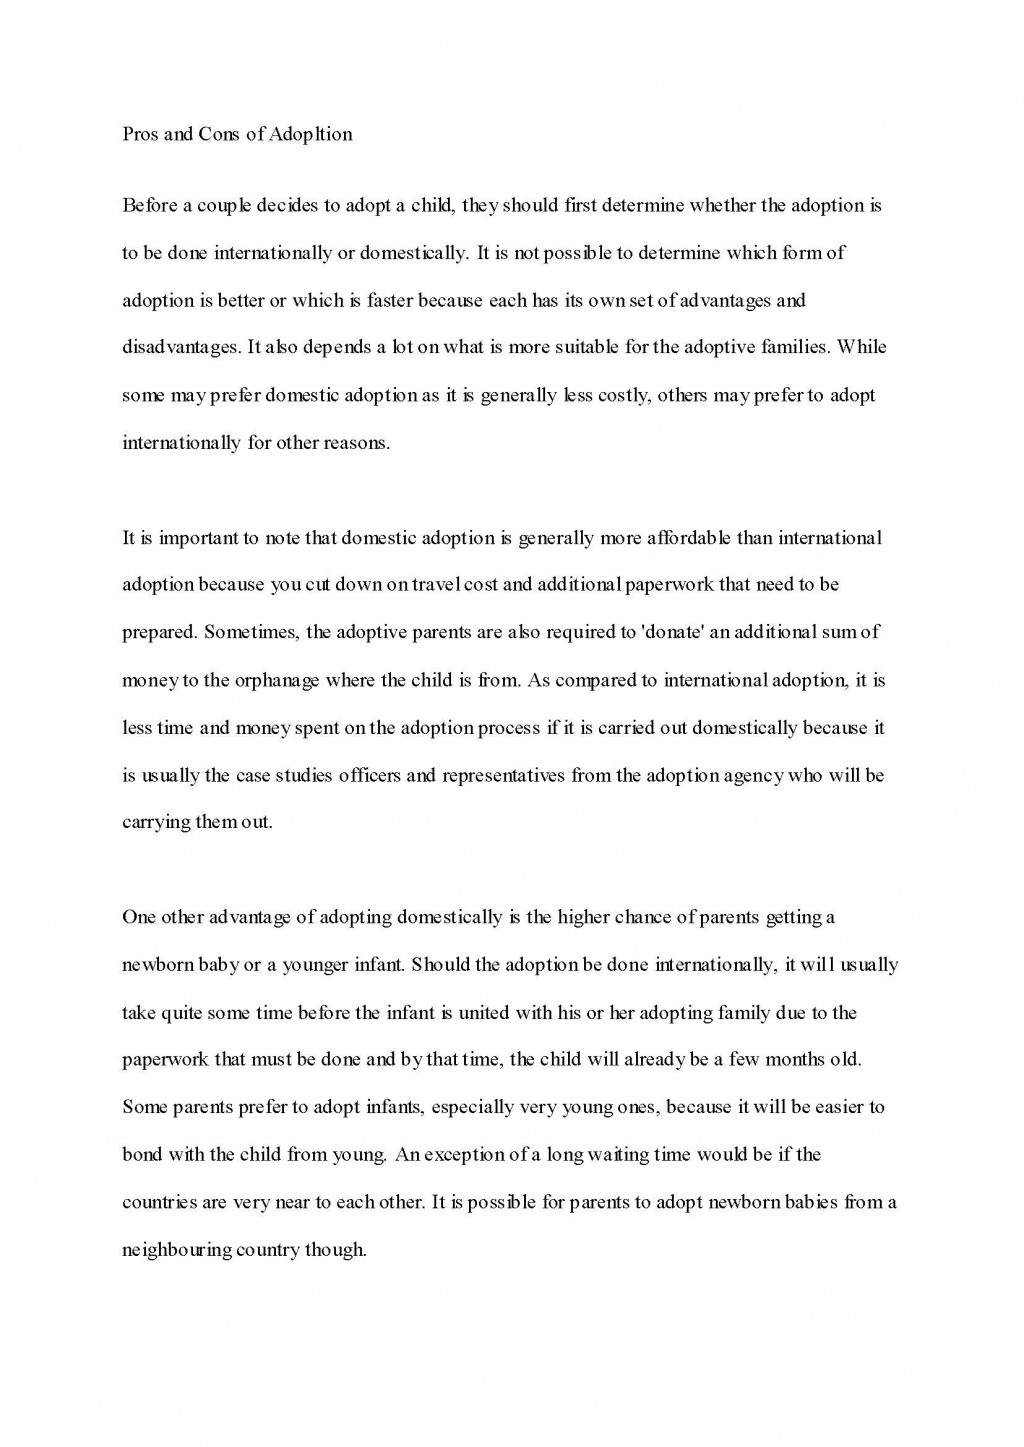 005 Respect Essay To Copy Example Adoption Surprising Large